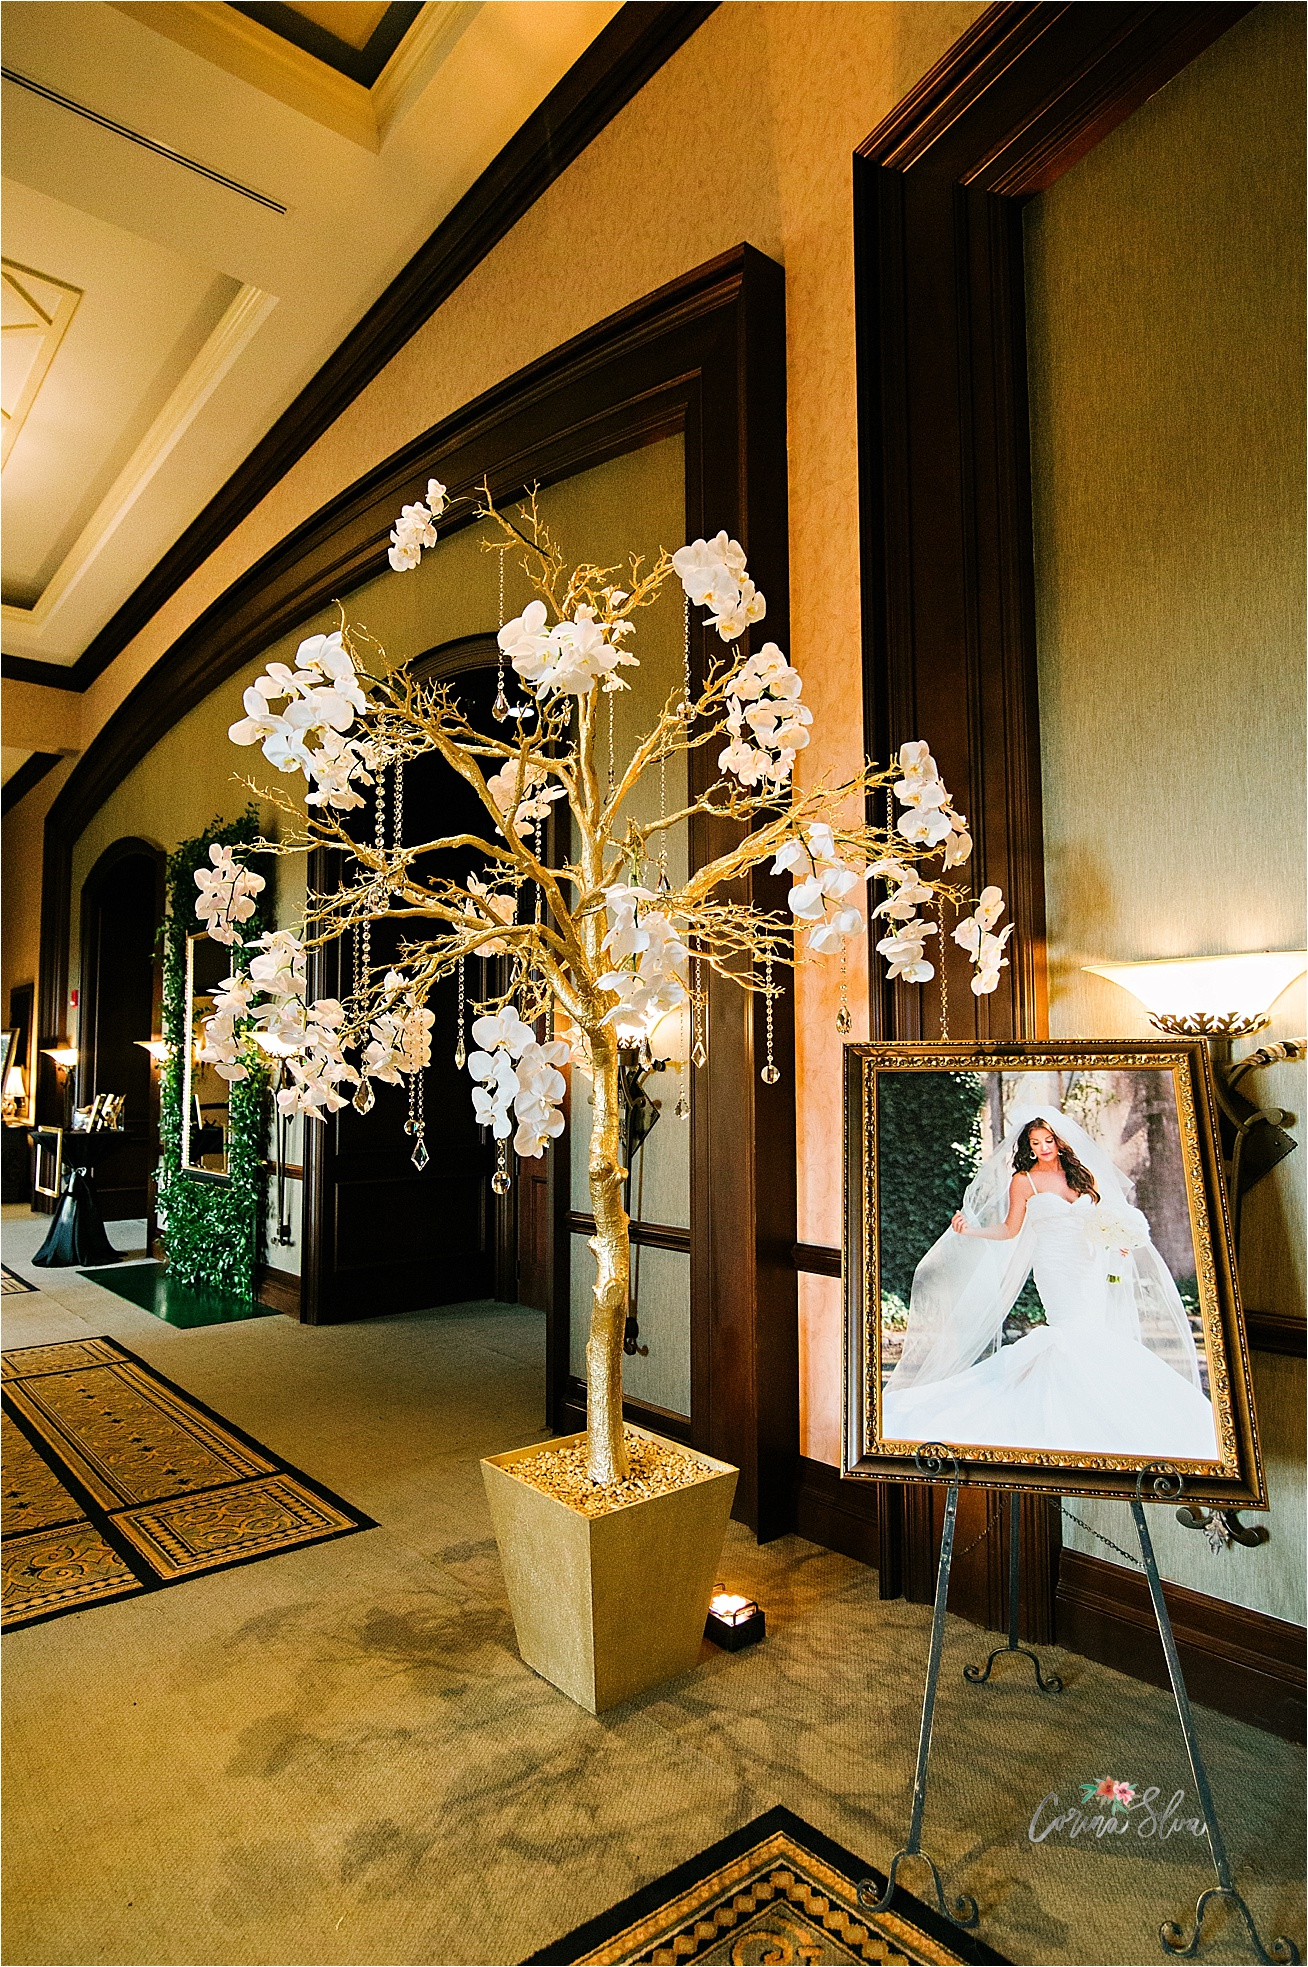 RSG-Event-and-Designs-luxury-wedding-decor-photos, Corina-Silva-Studios_0024.jpg